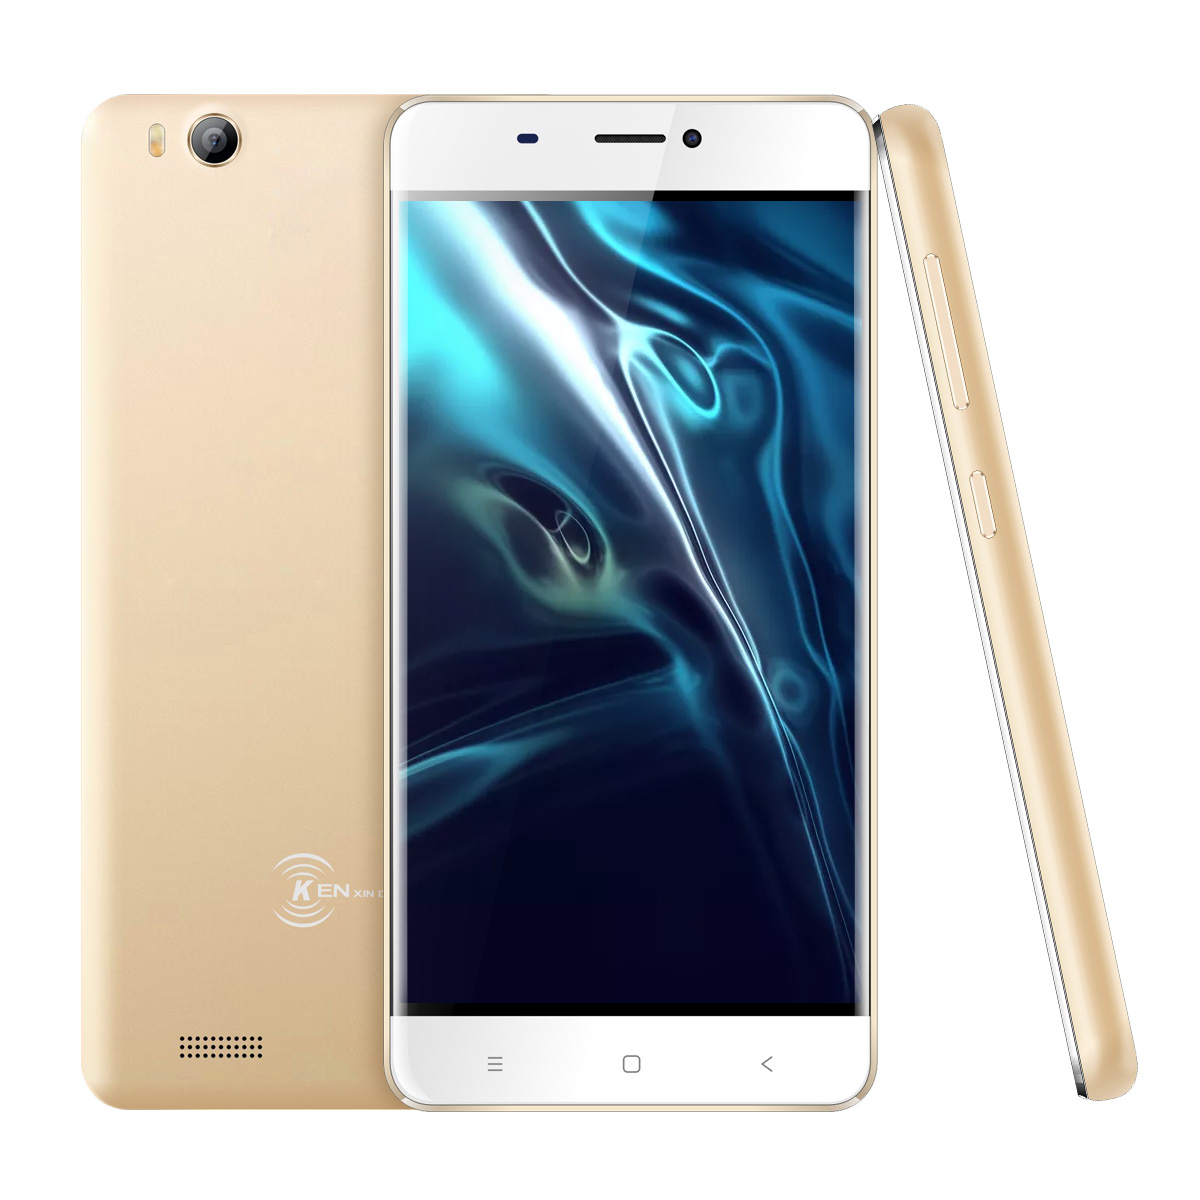 V5 3G Smartphone - Android 7.0 OS, Quad Core CPU 4.0-Inch Display, 1500mAh Battery, Front & Rear Camera (Gold)